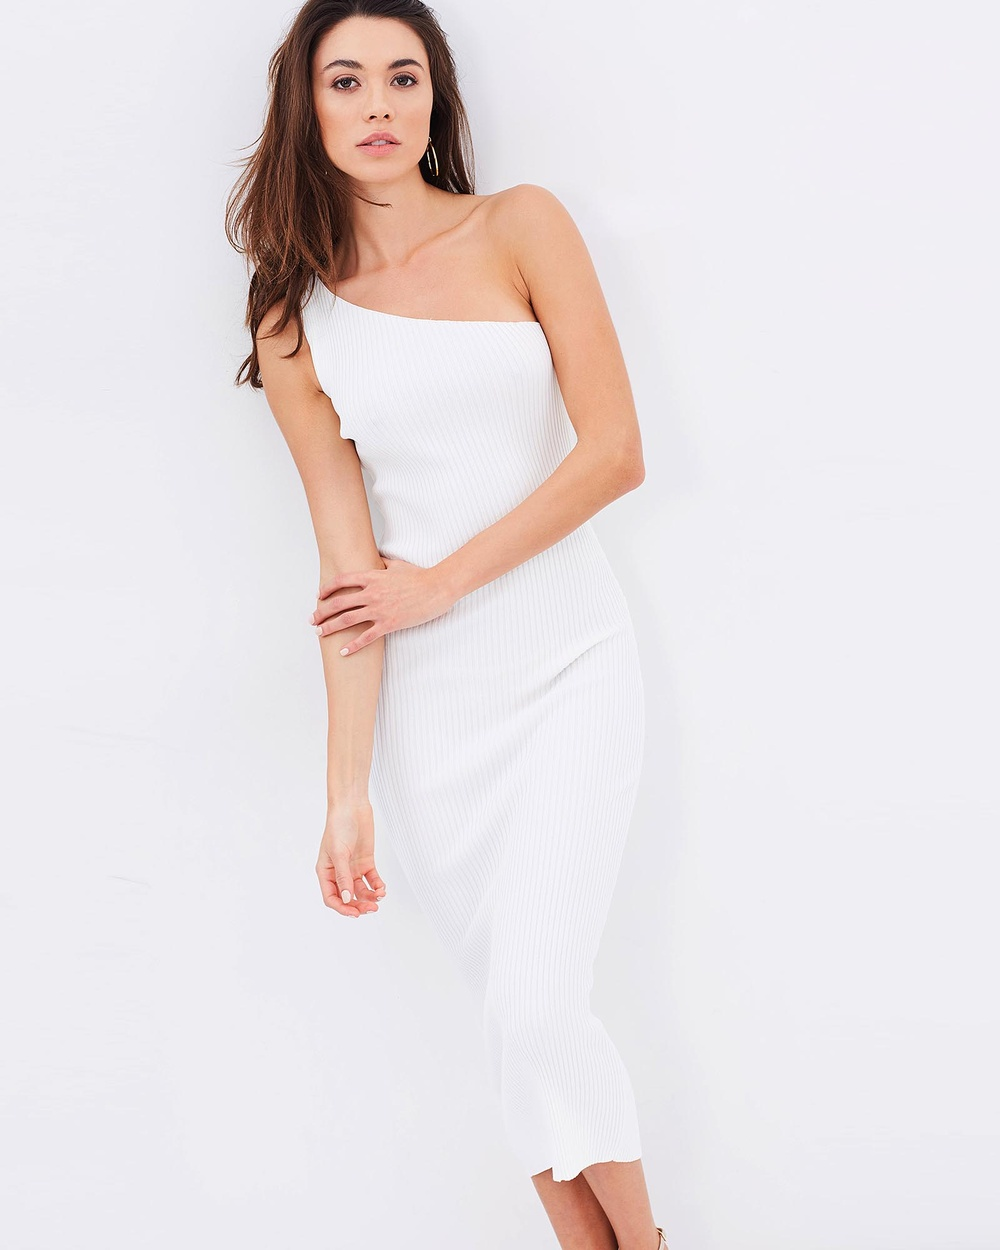 BSSA Goddess Dress Bodycon Dresses White Goddess Dress